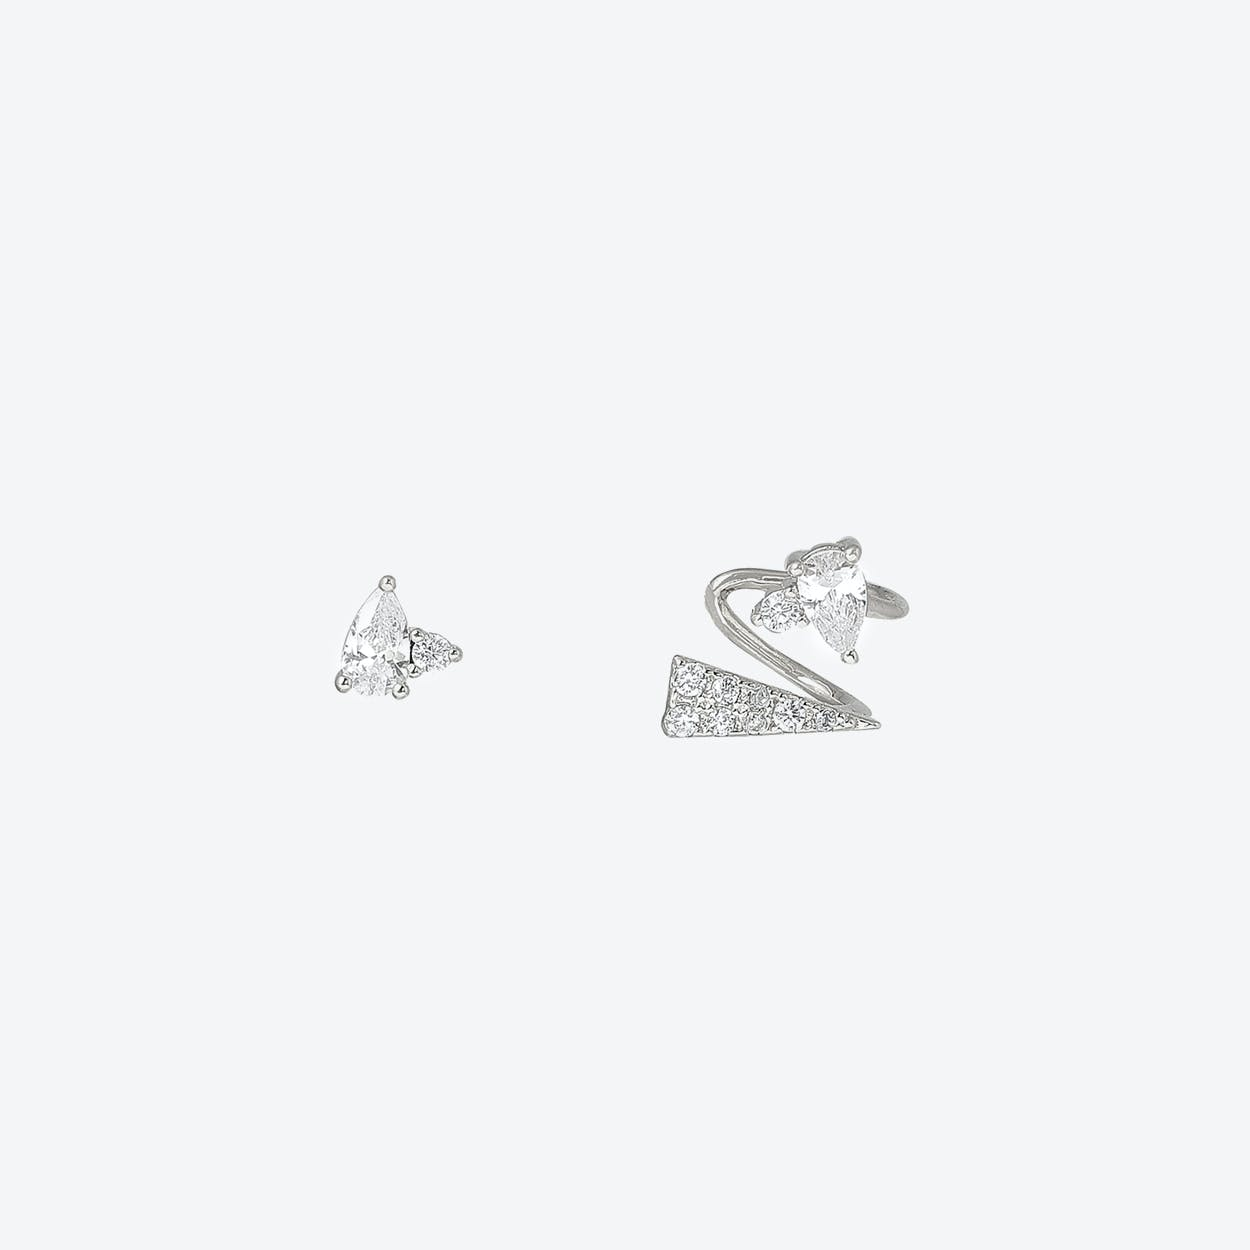 White Gold Asymmetric Stud & Ear Cuff